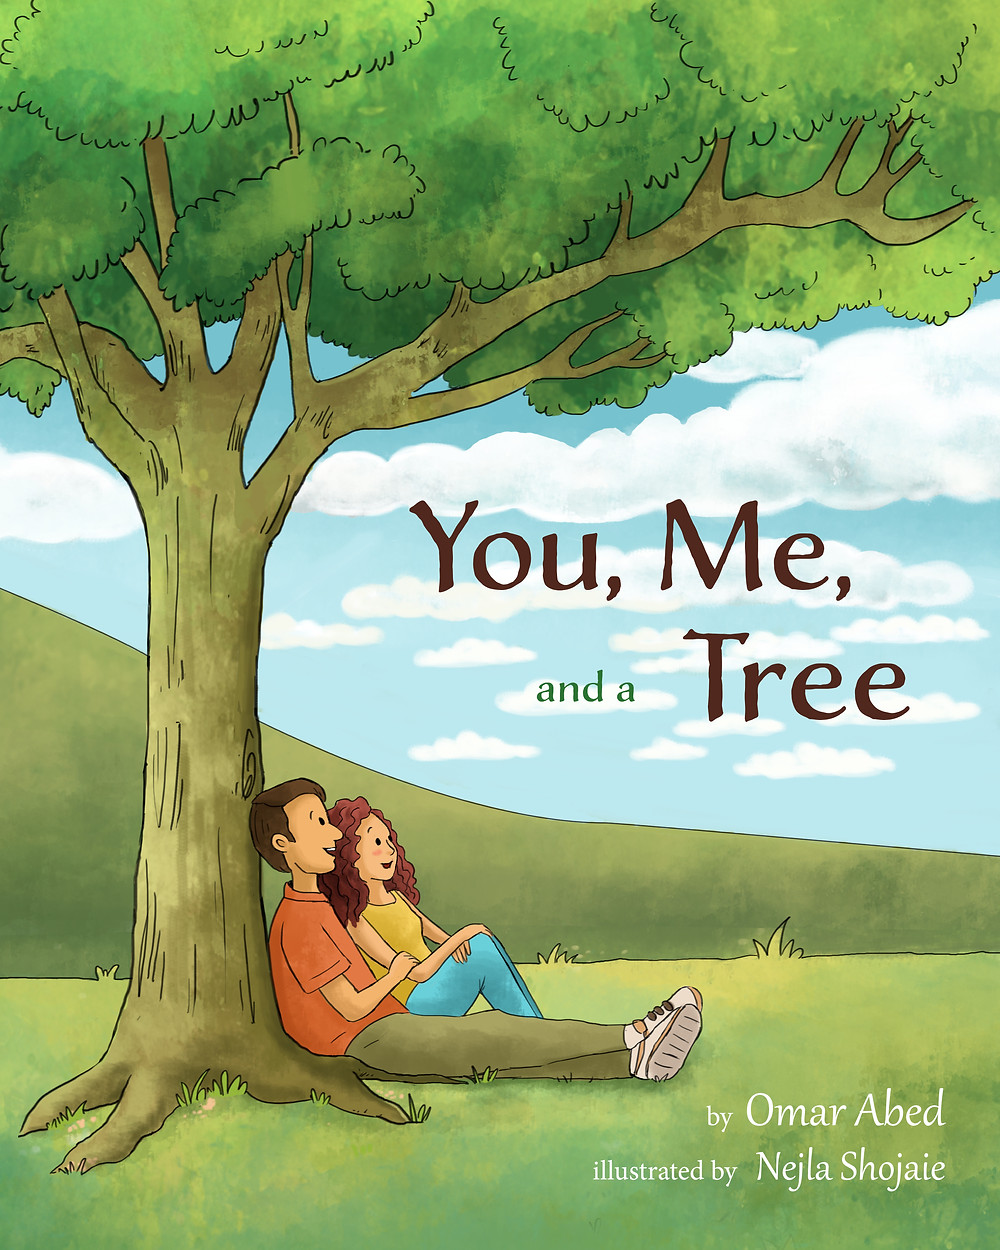 You, Me, and a Tree